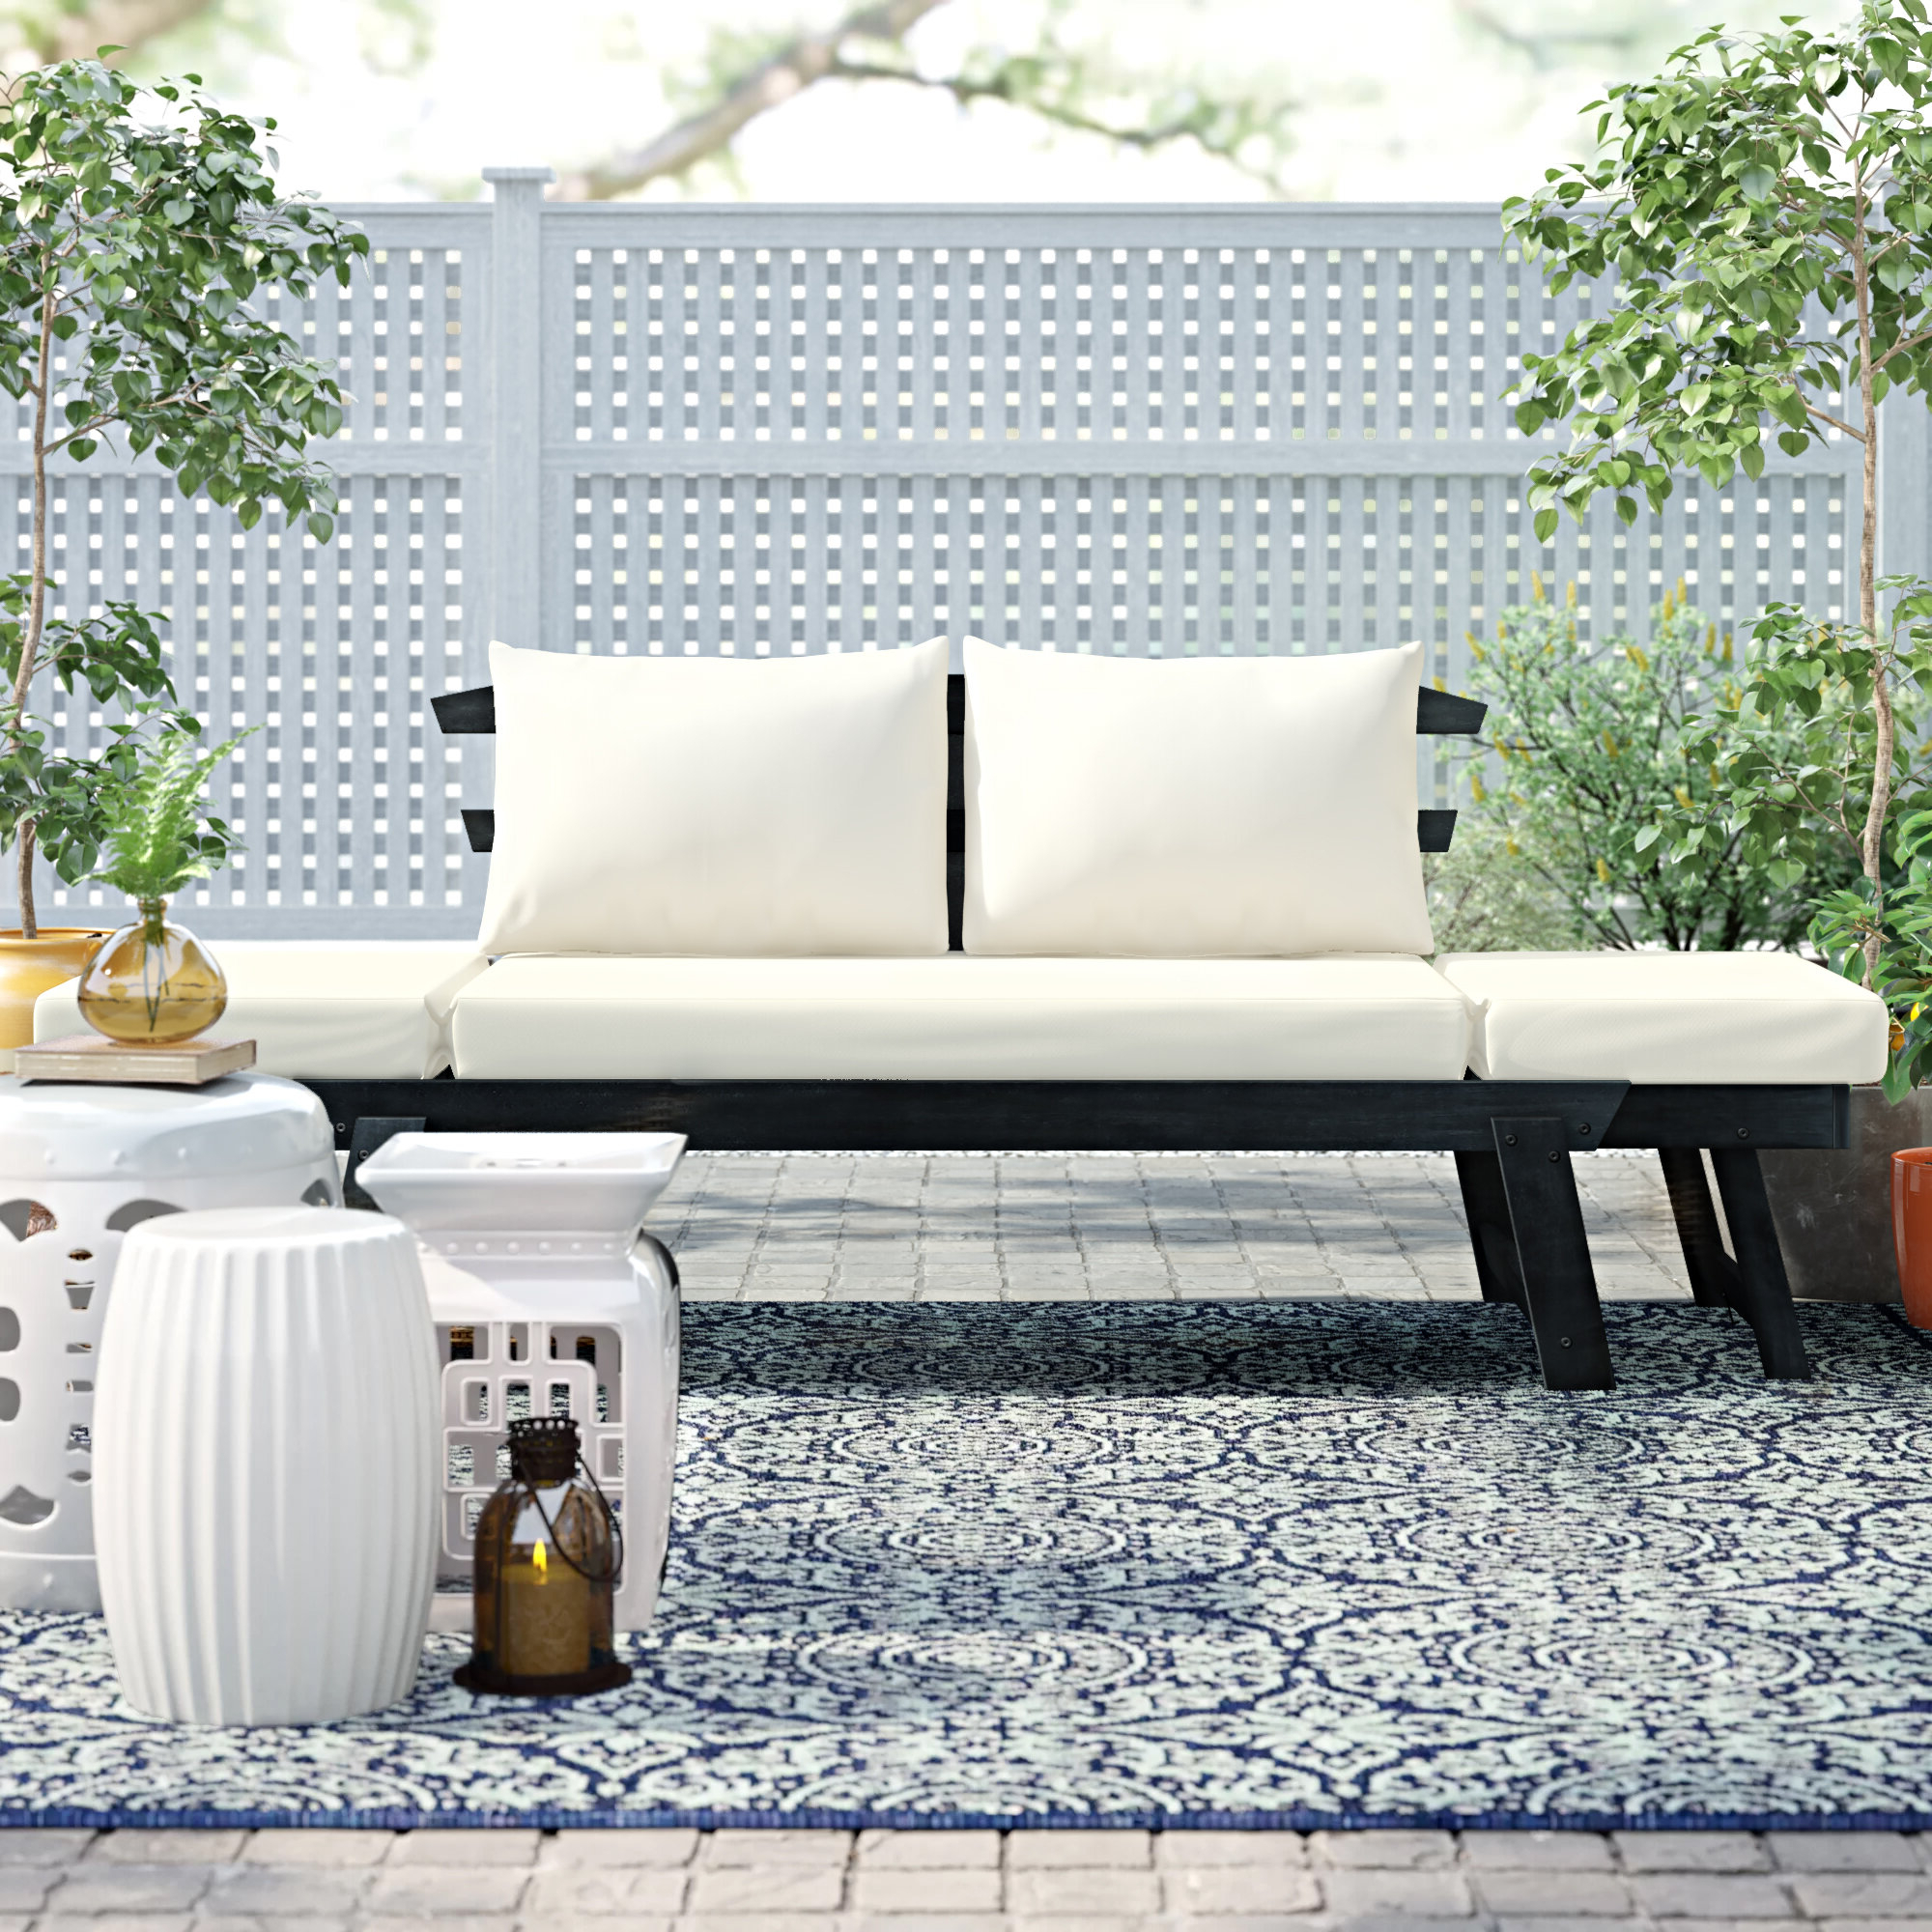 Beal Patio Daybeds With Cushions Pertaining To Latest Beal Patio Daybed With Cushions (Gallery 1 of 25)